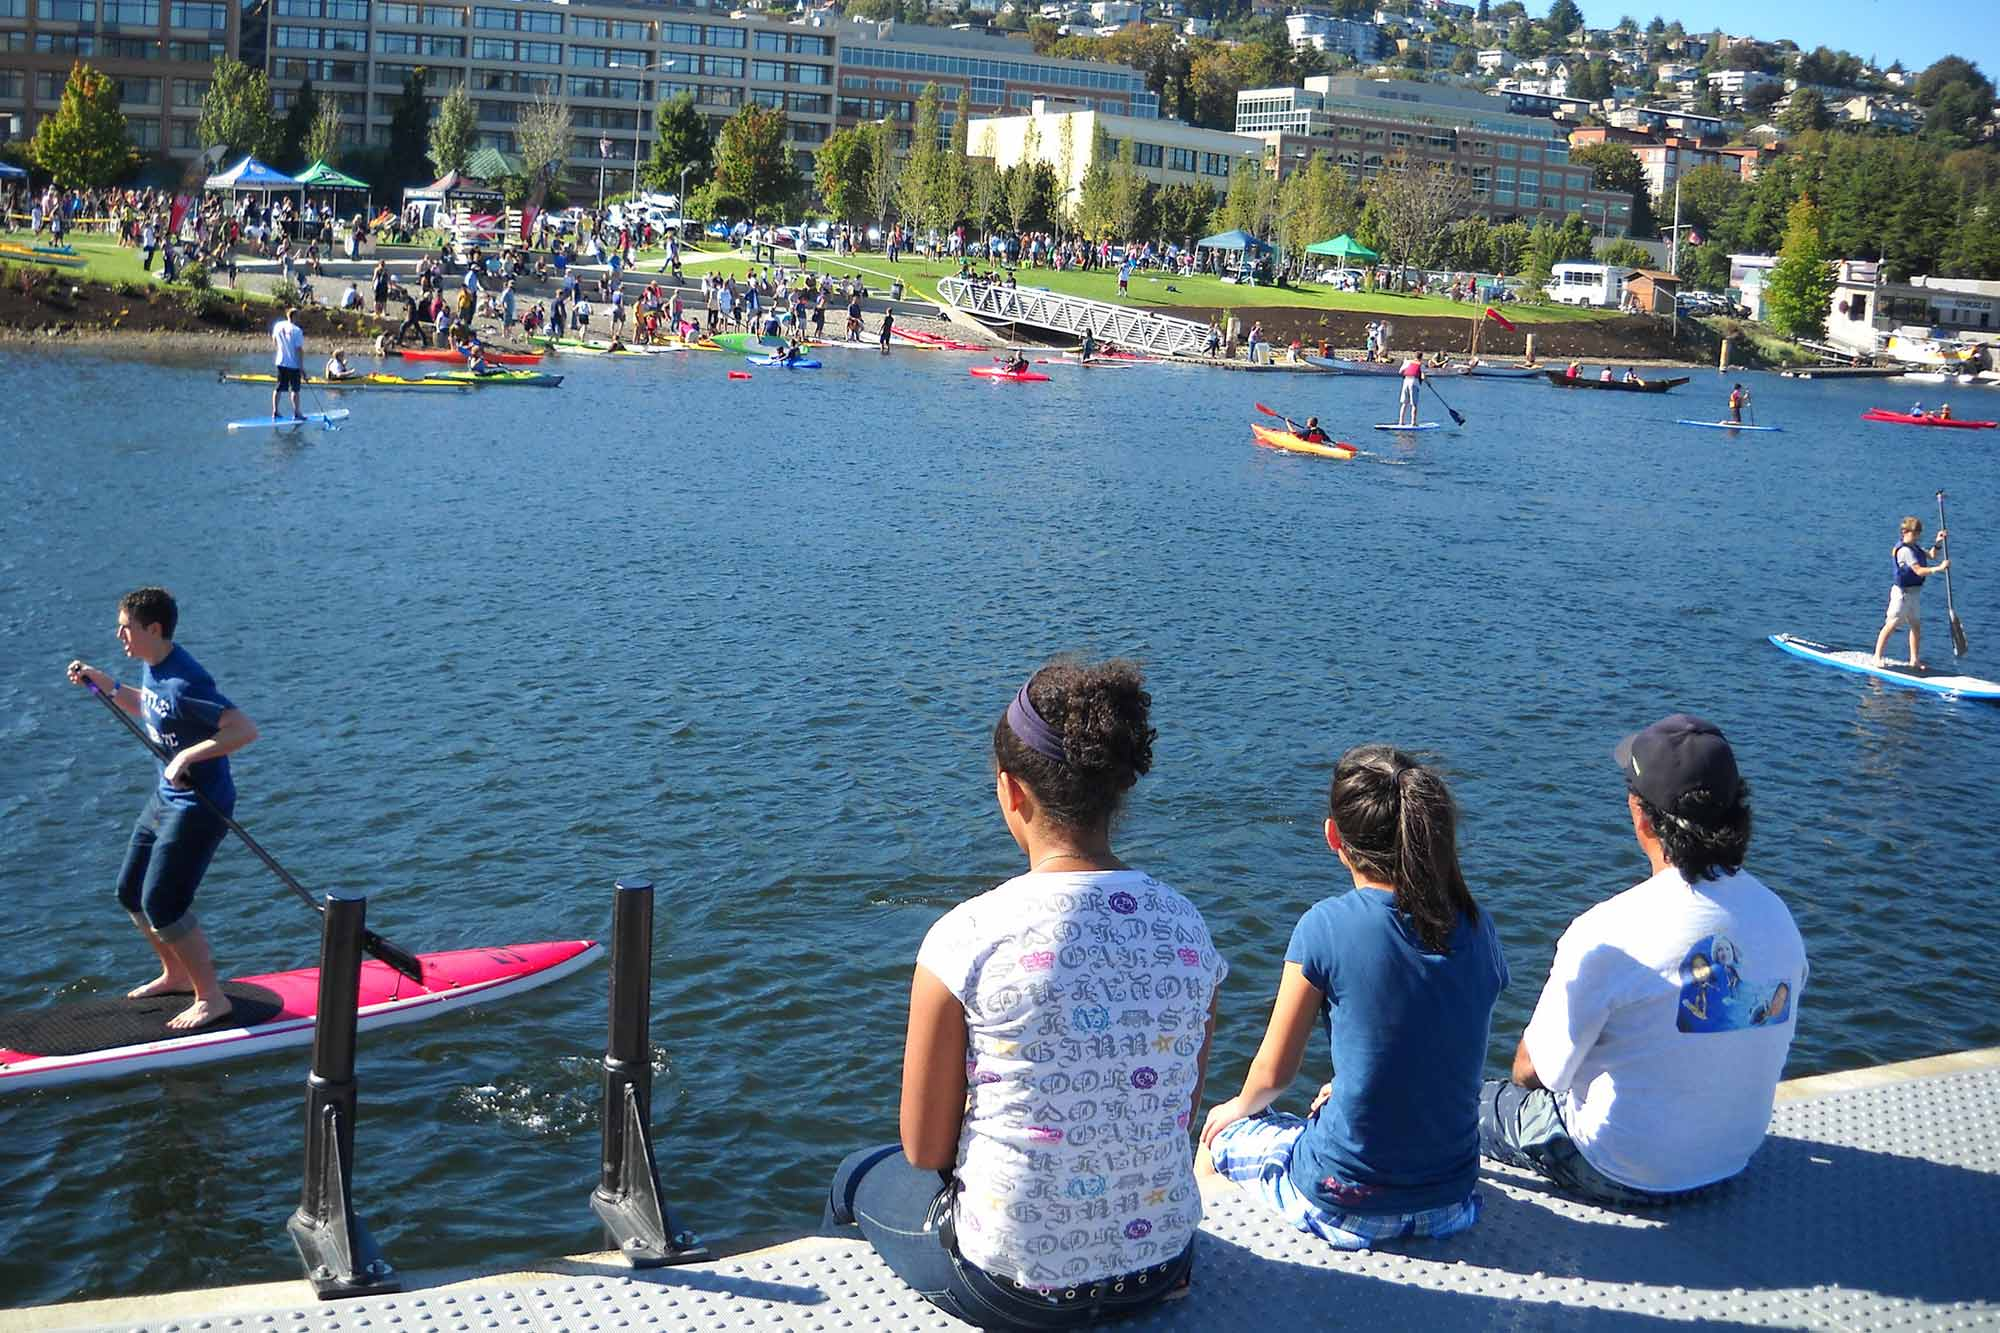 History And Significance of Lake Union